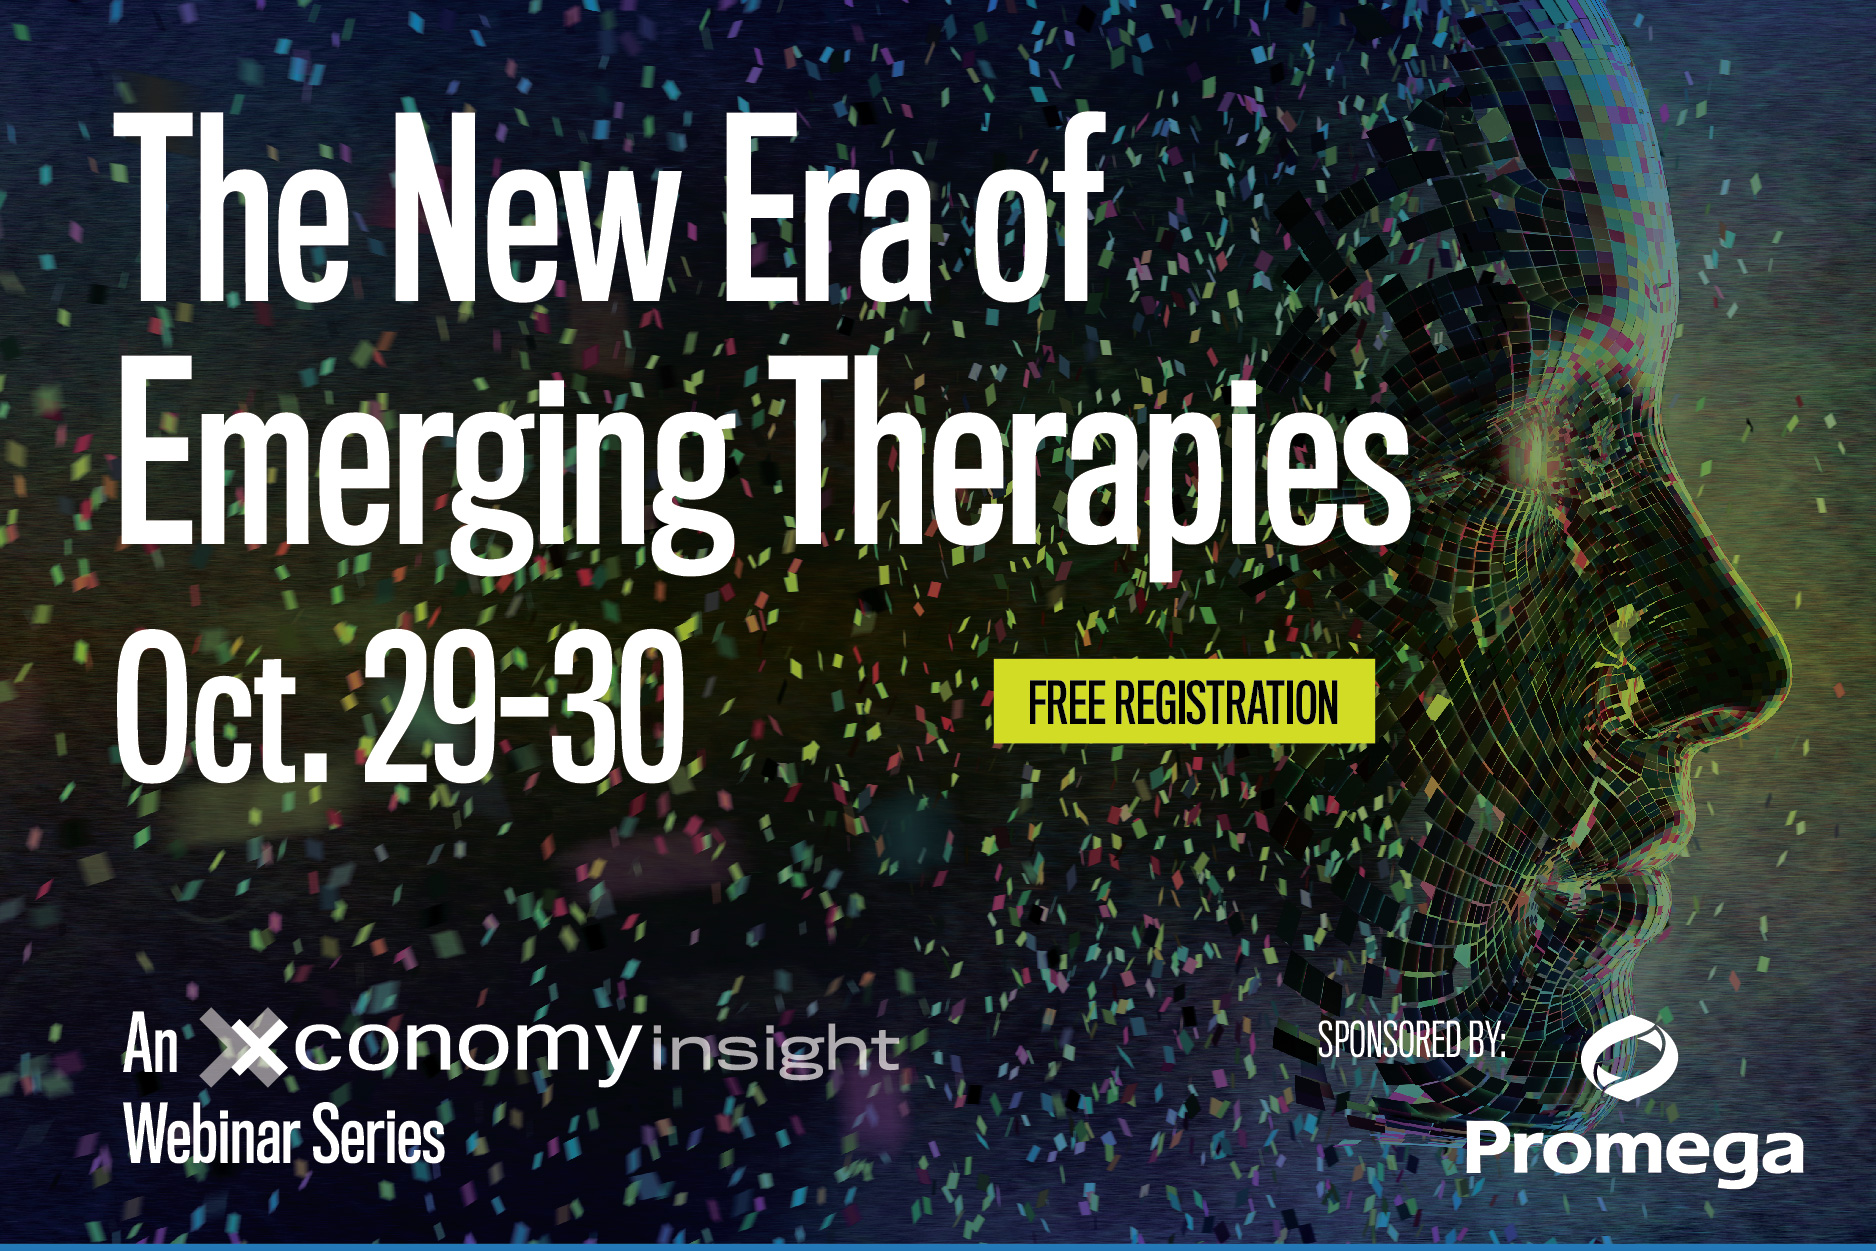 The New Era of Emerging Therapies Webinar Series